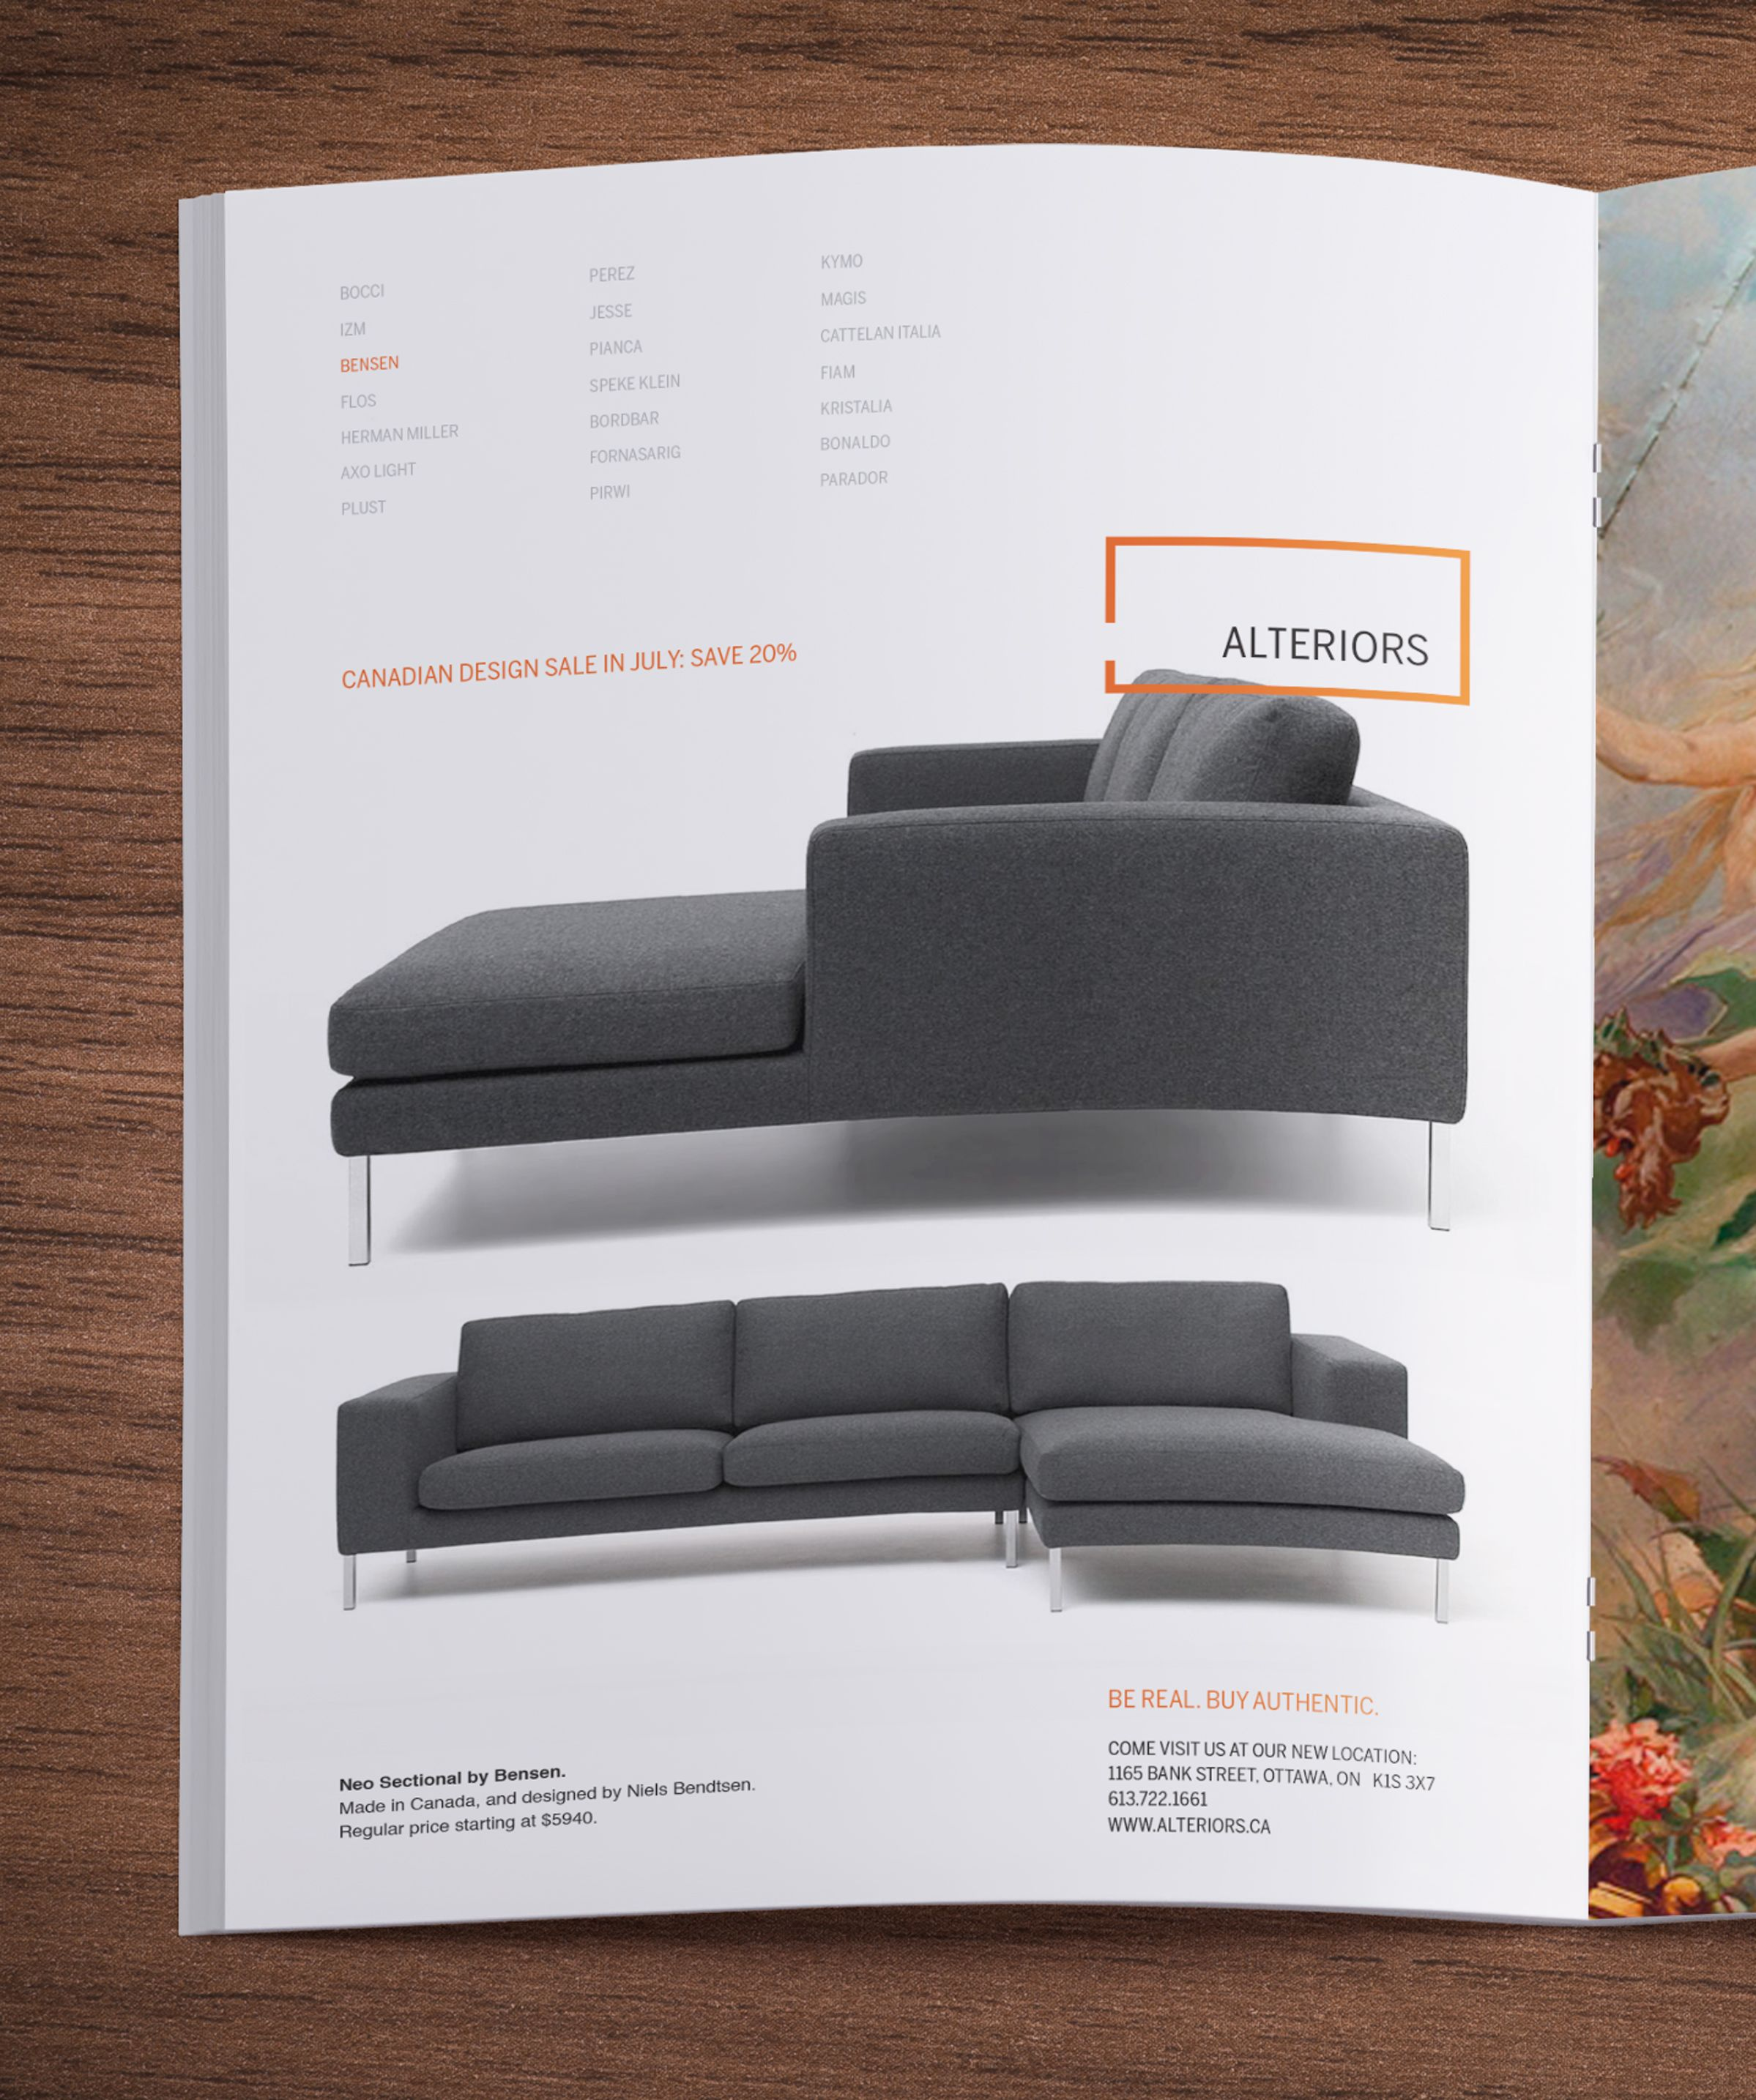 Print Advertisement for Alteriors, a retail furniture store, by Graphic Designer idApostle